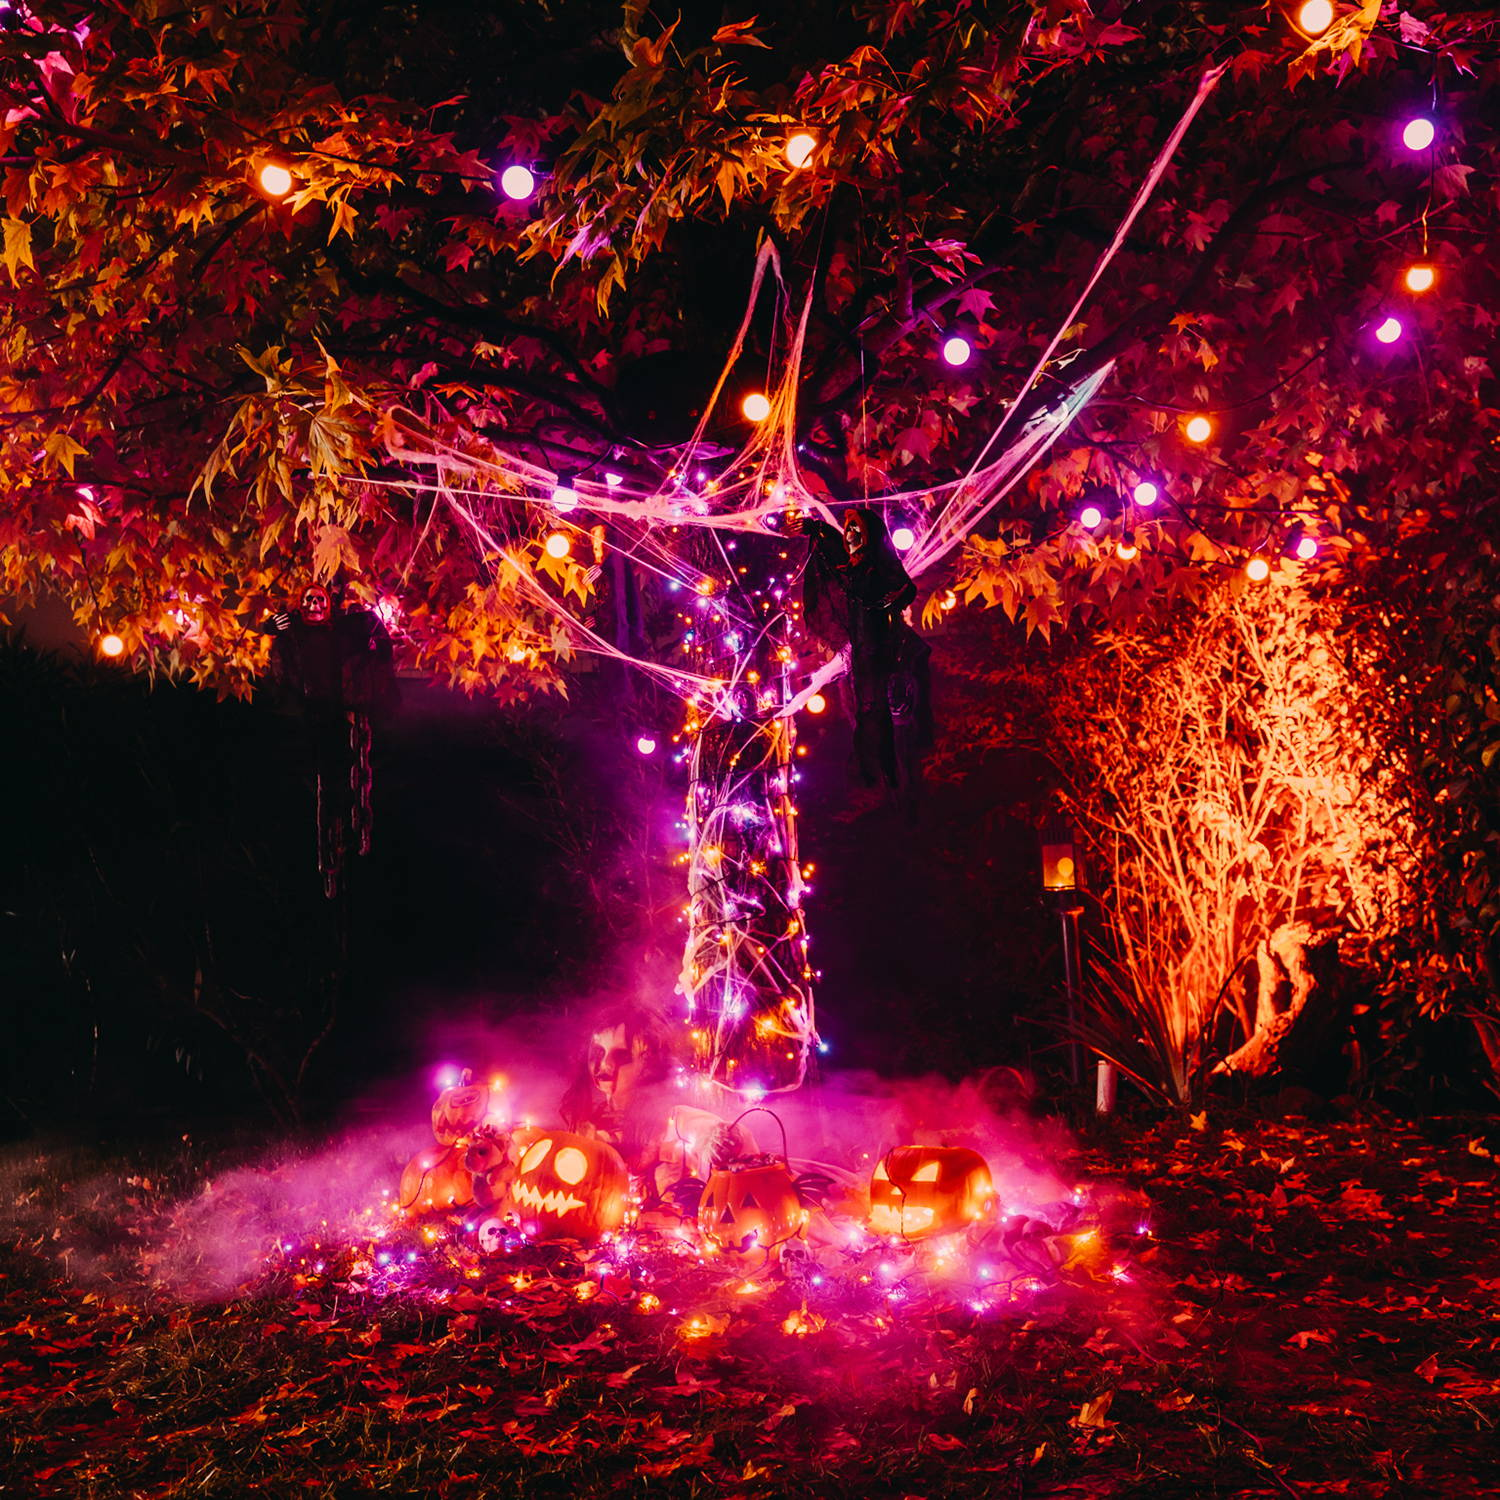 Halloween themed Twinkly lighting tree display with pumpkins and orange and purple lights